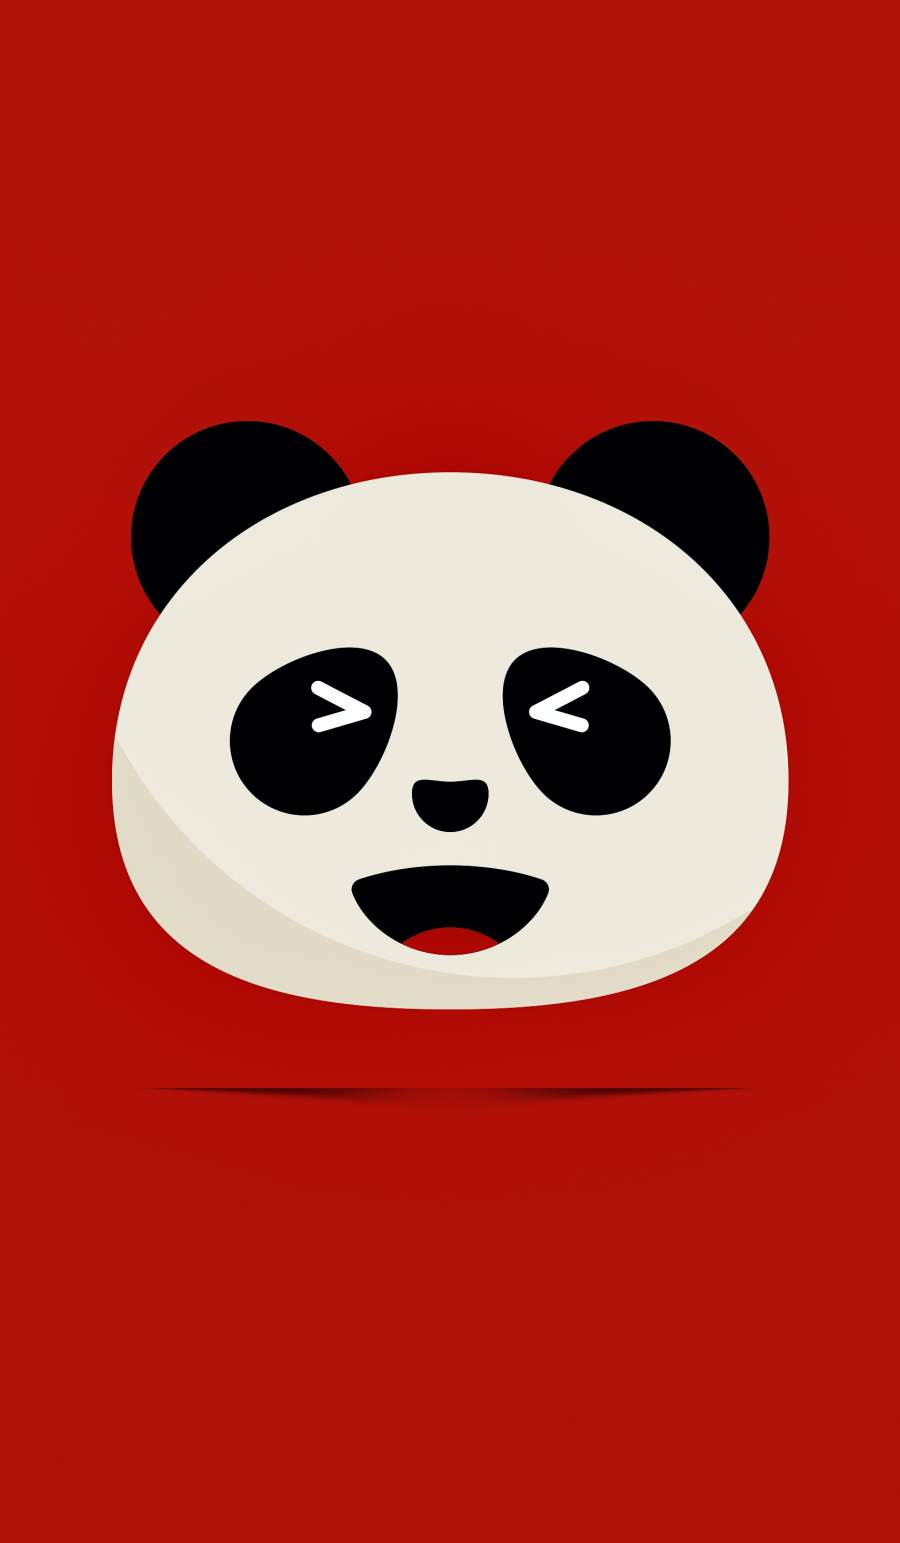 Panda Emoji iPhone Wallpaper